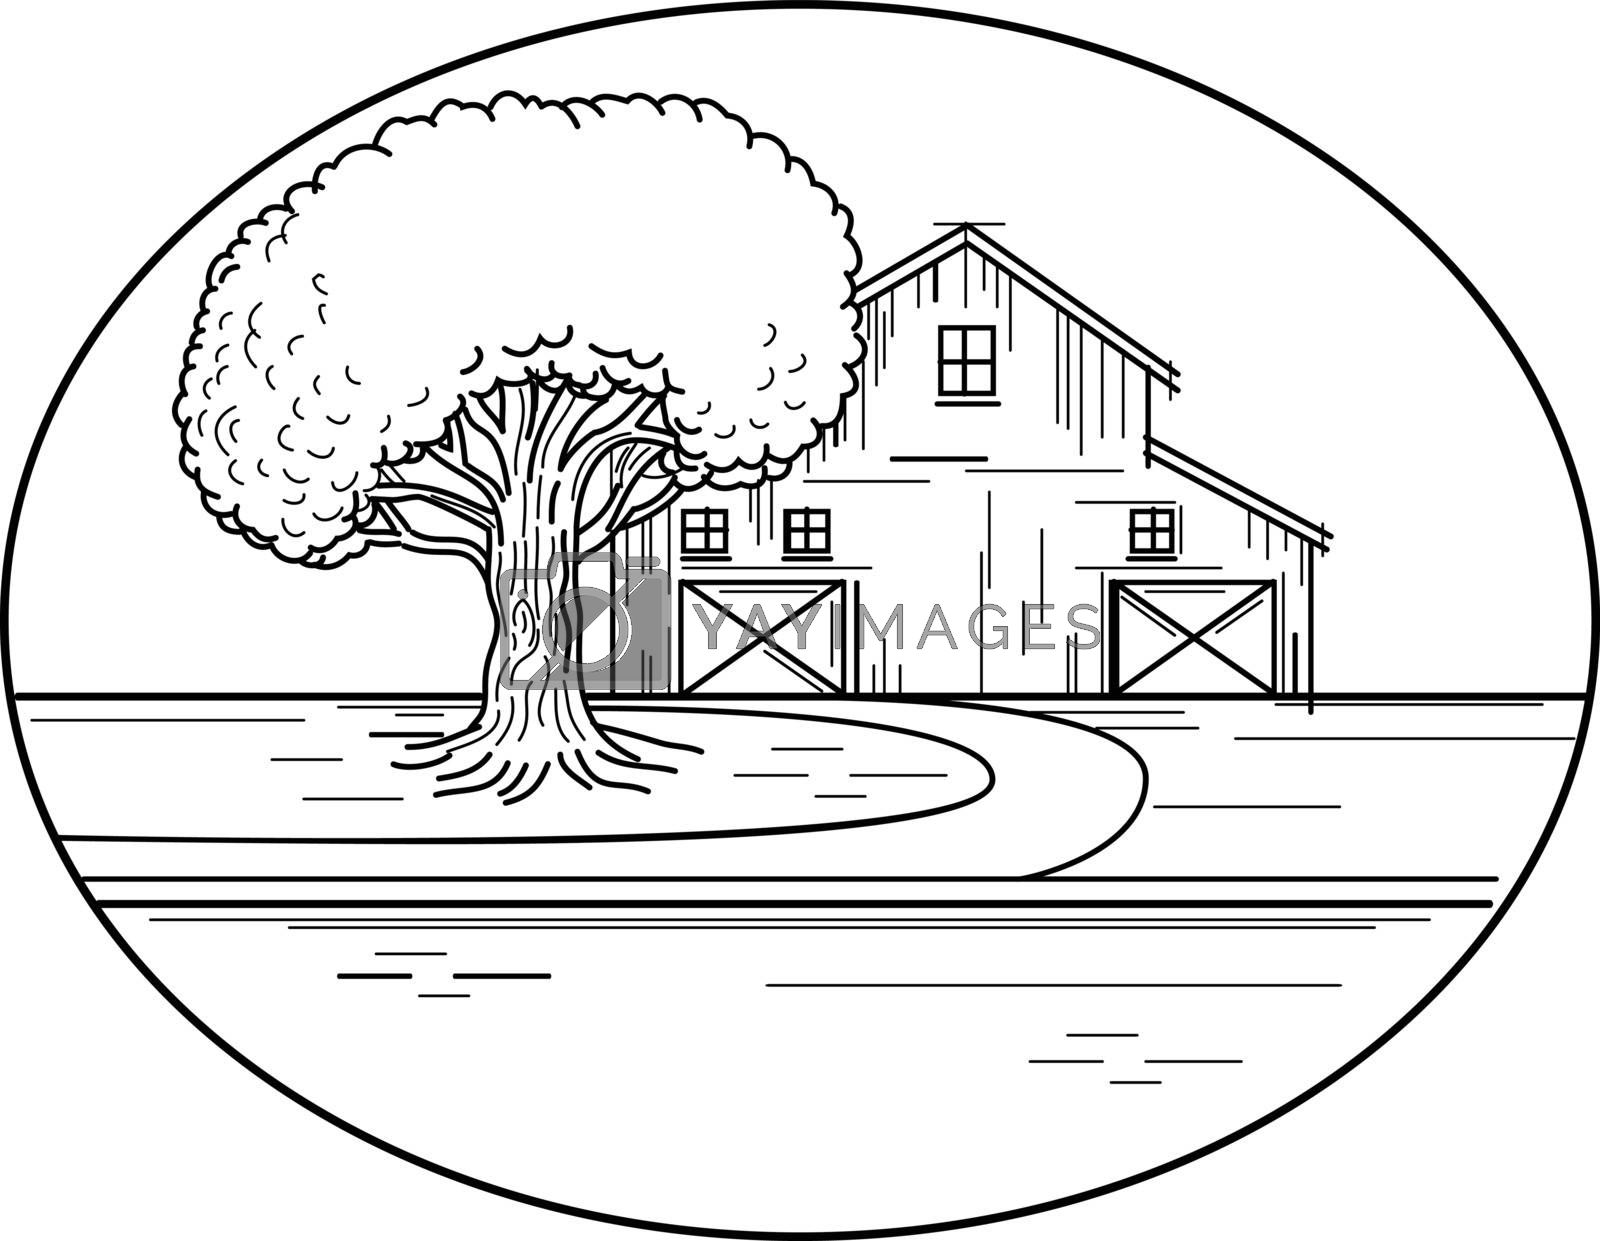 Mono line illustration of an American farm house or barn with oak tree on the side and road leading up to it set inside oval shape   done in monoline style.